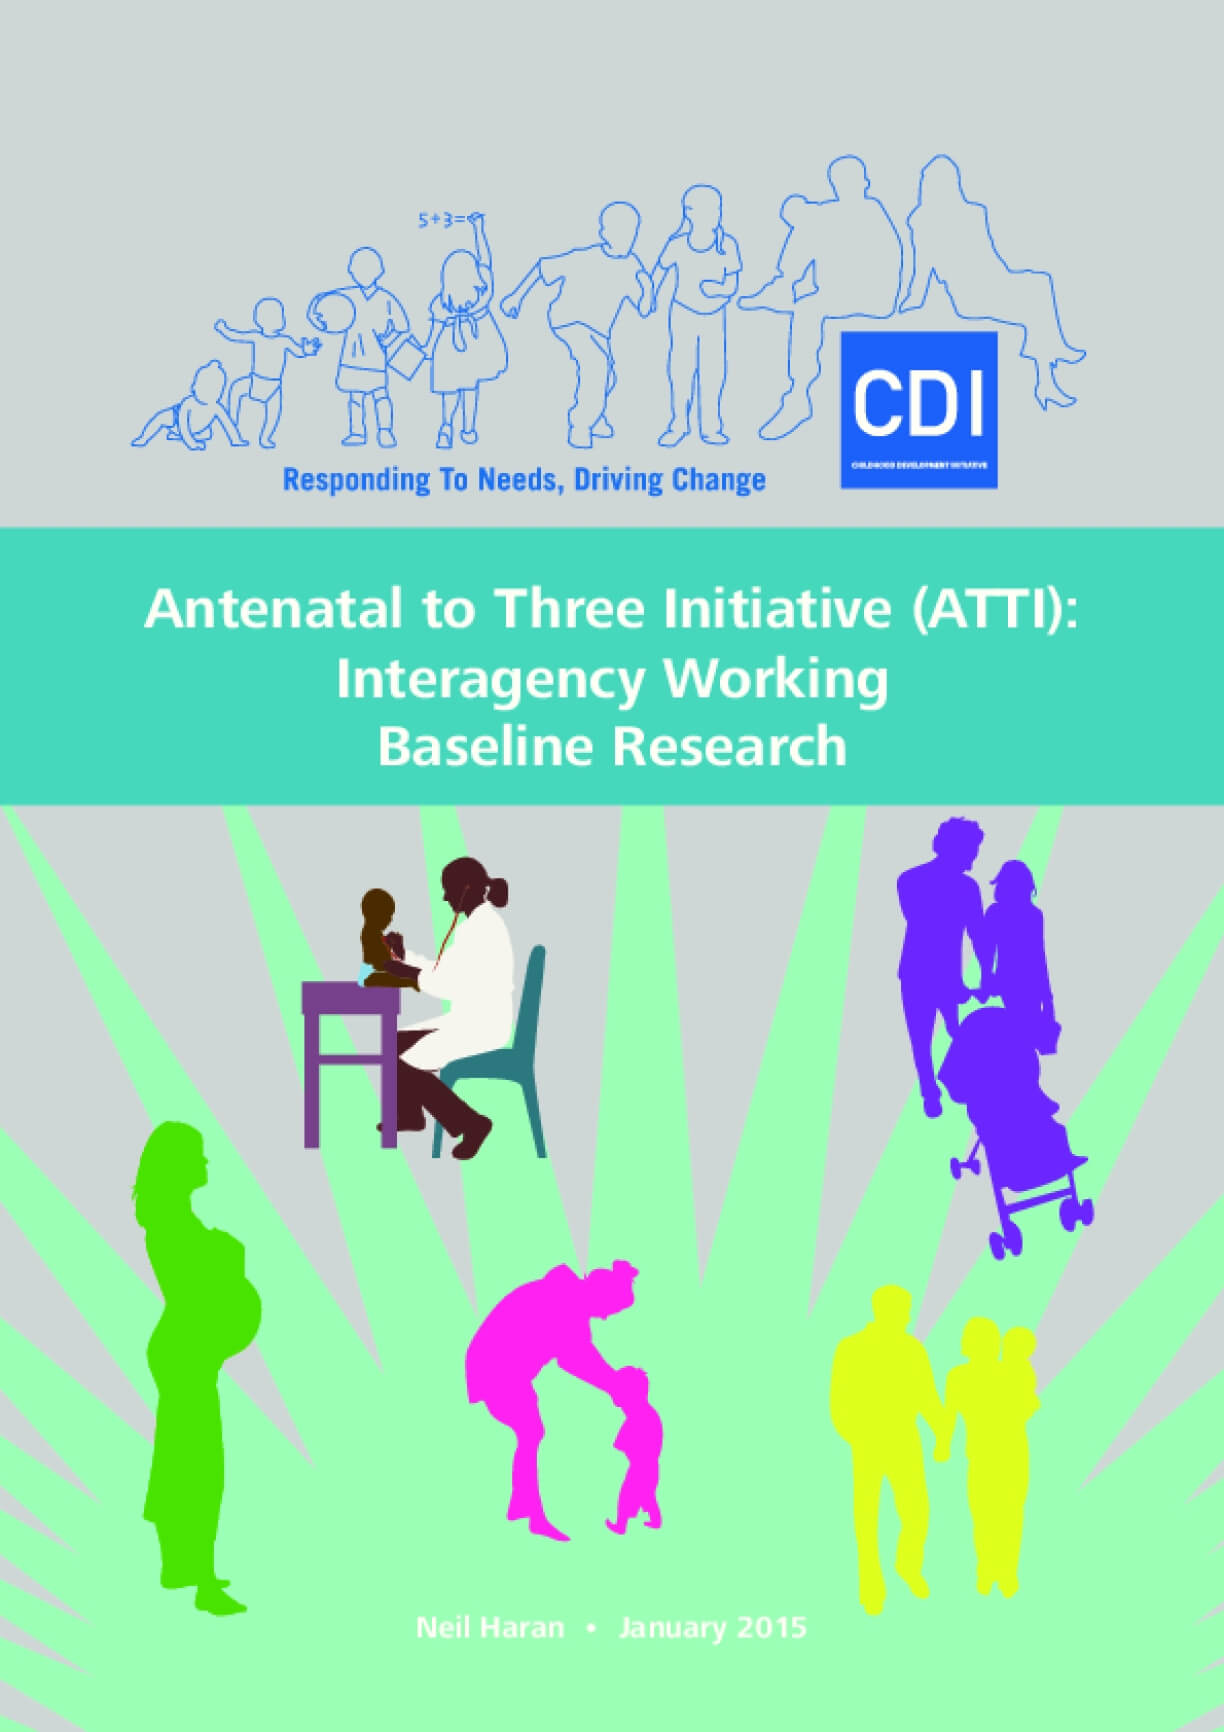 Antenatal to Three Initiative (ATTI): Interagency Working Baseline Research